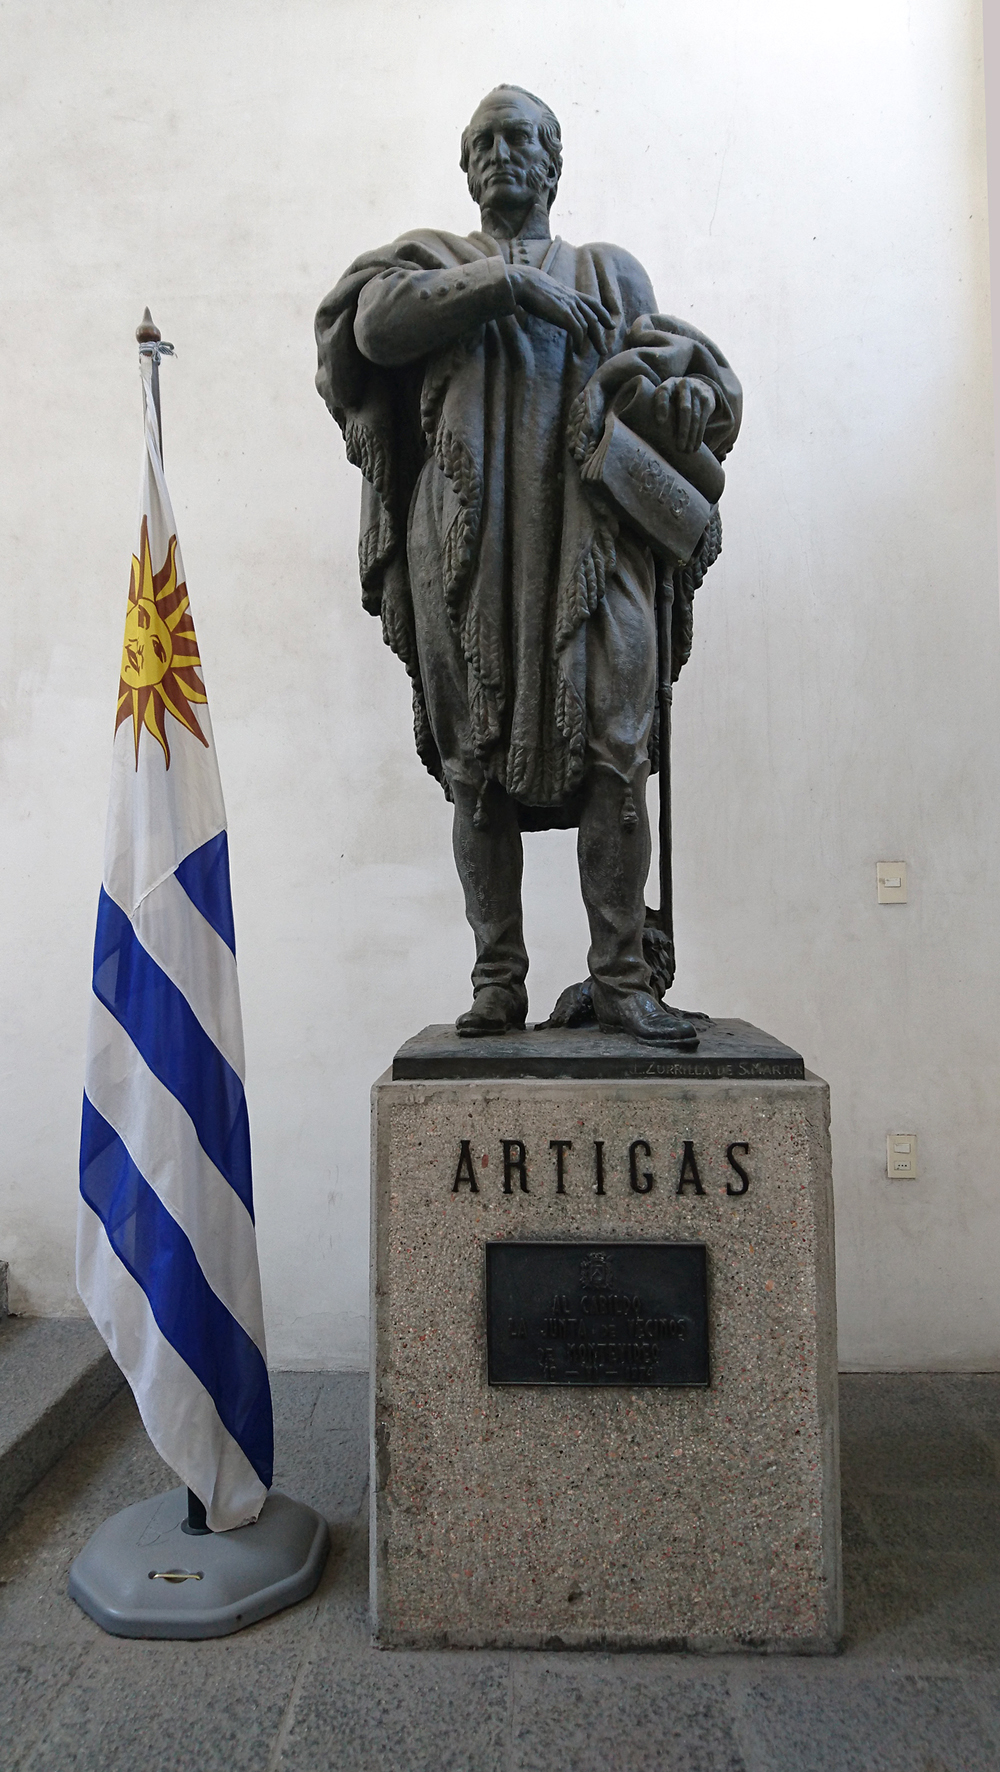 The statue of José Artigas in the Museo Histórico Cabildo. Photo: Barbora Sajmovicova, 2016, Uruguay.